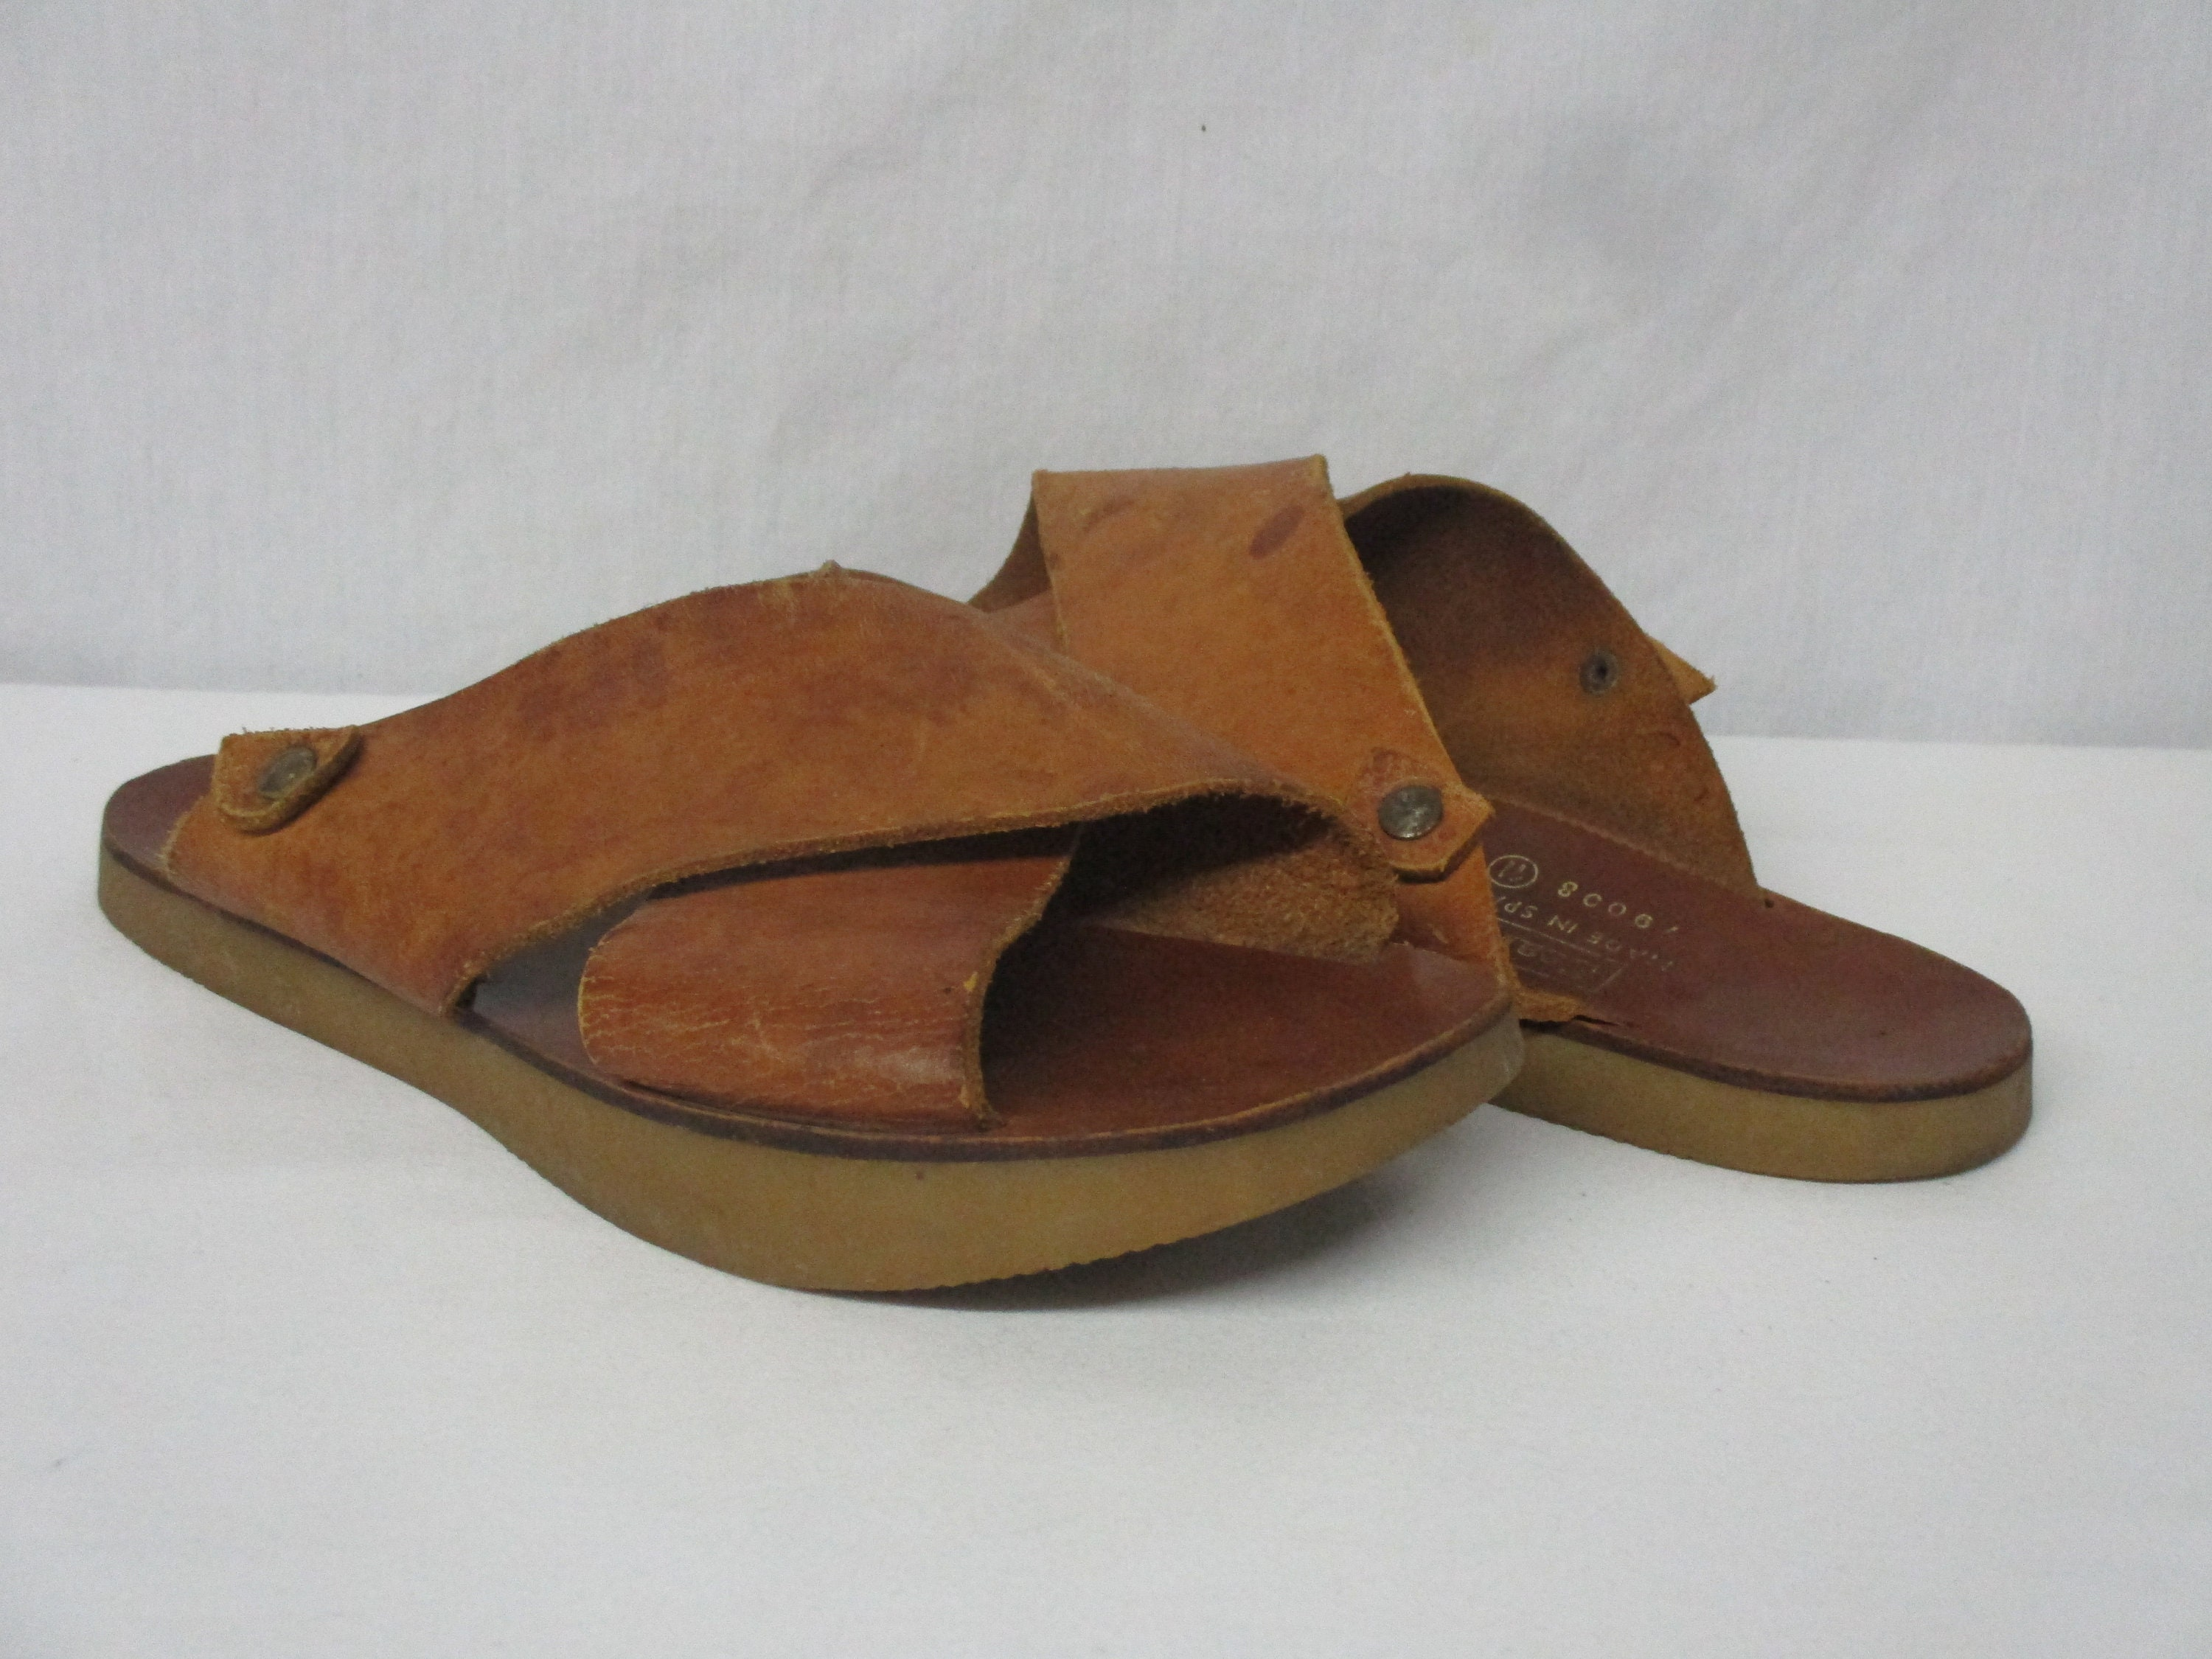 3e079684803 Vintage SEARS taille Double sangle en cuir marron Sandales